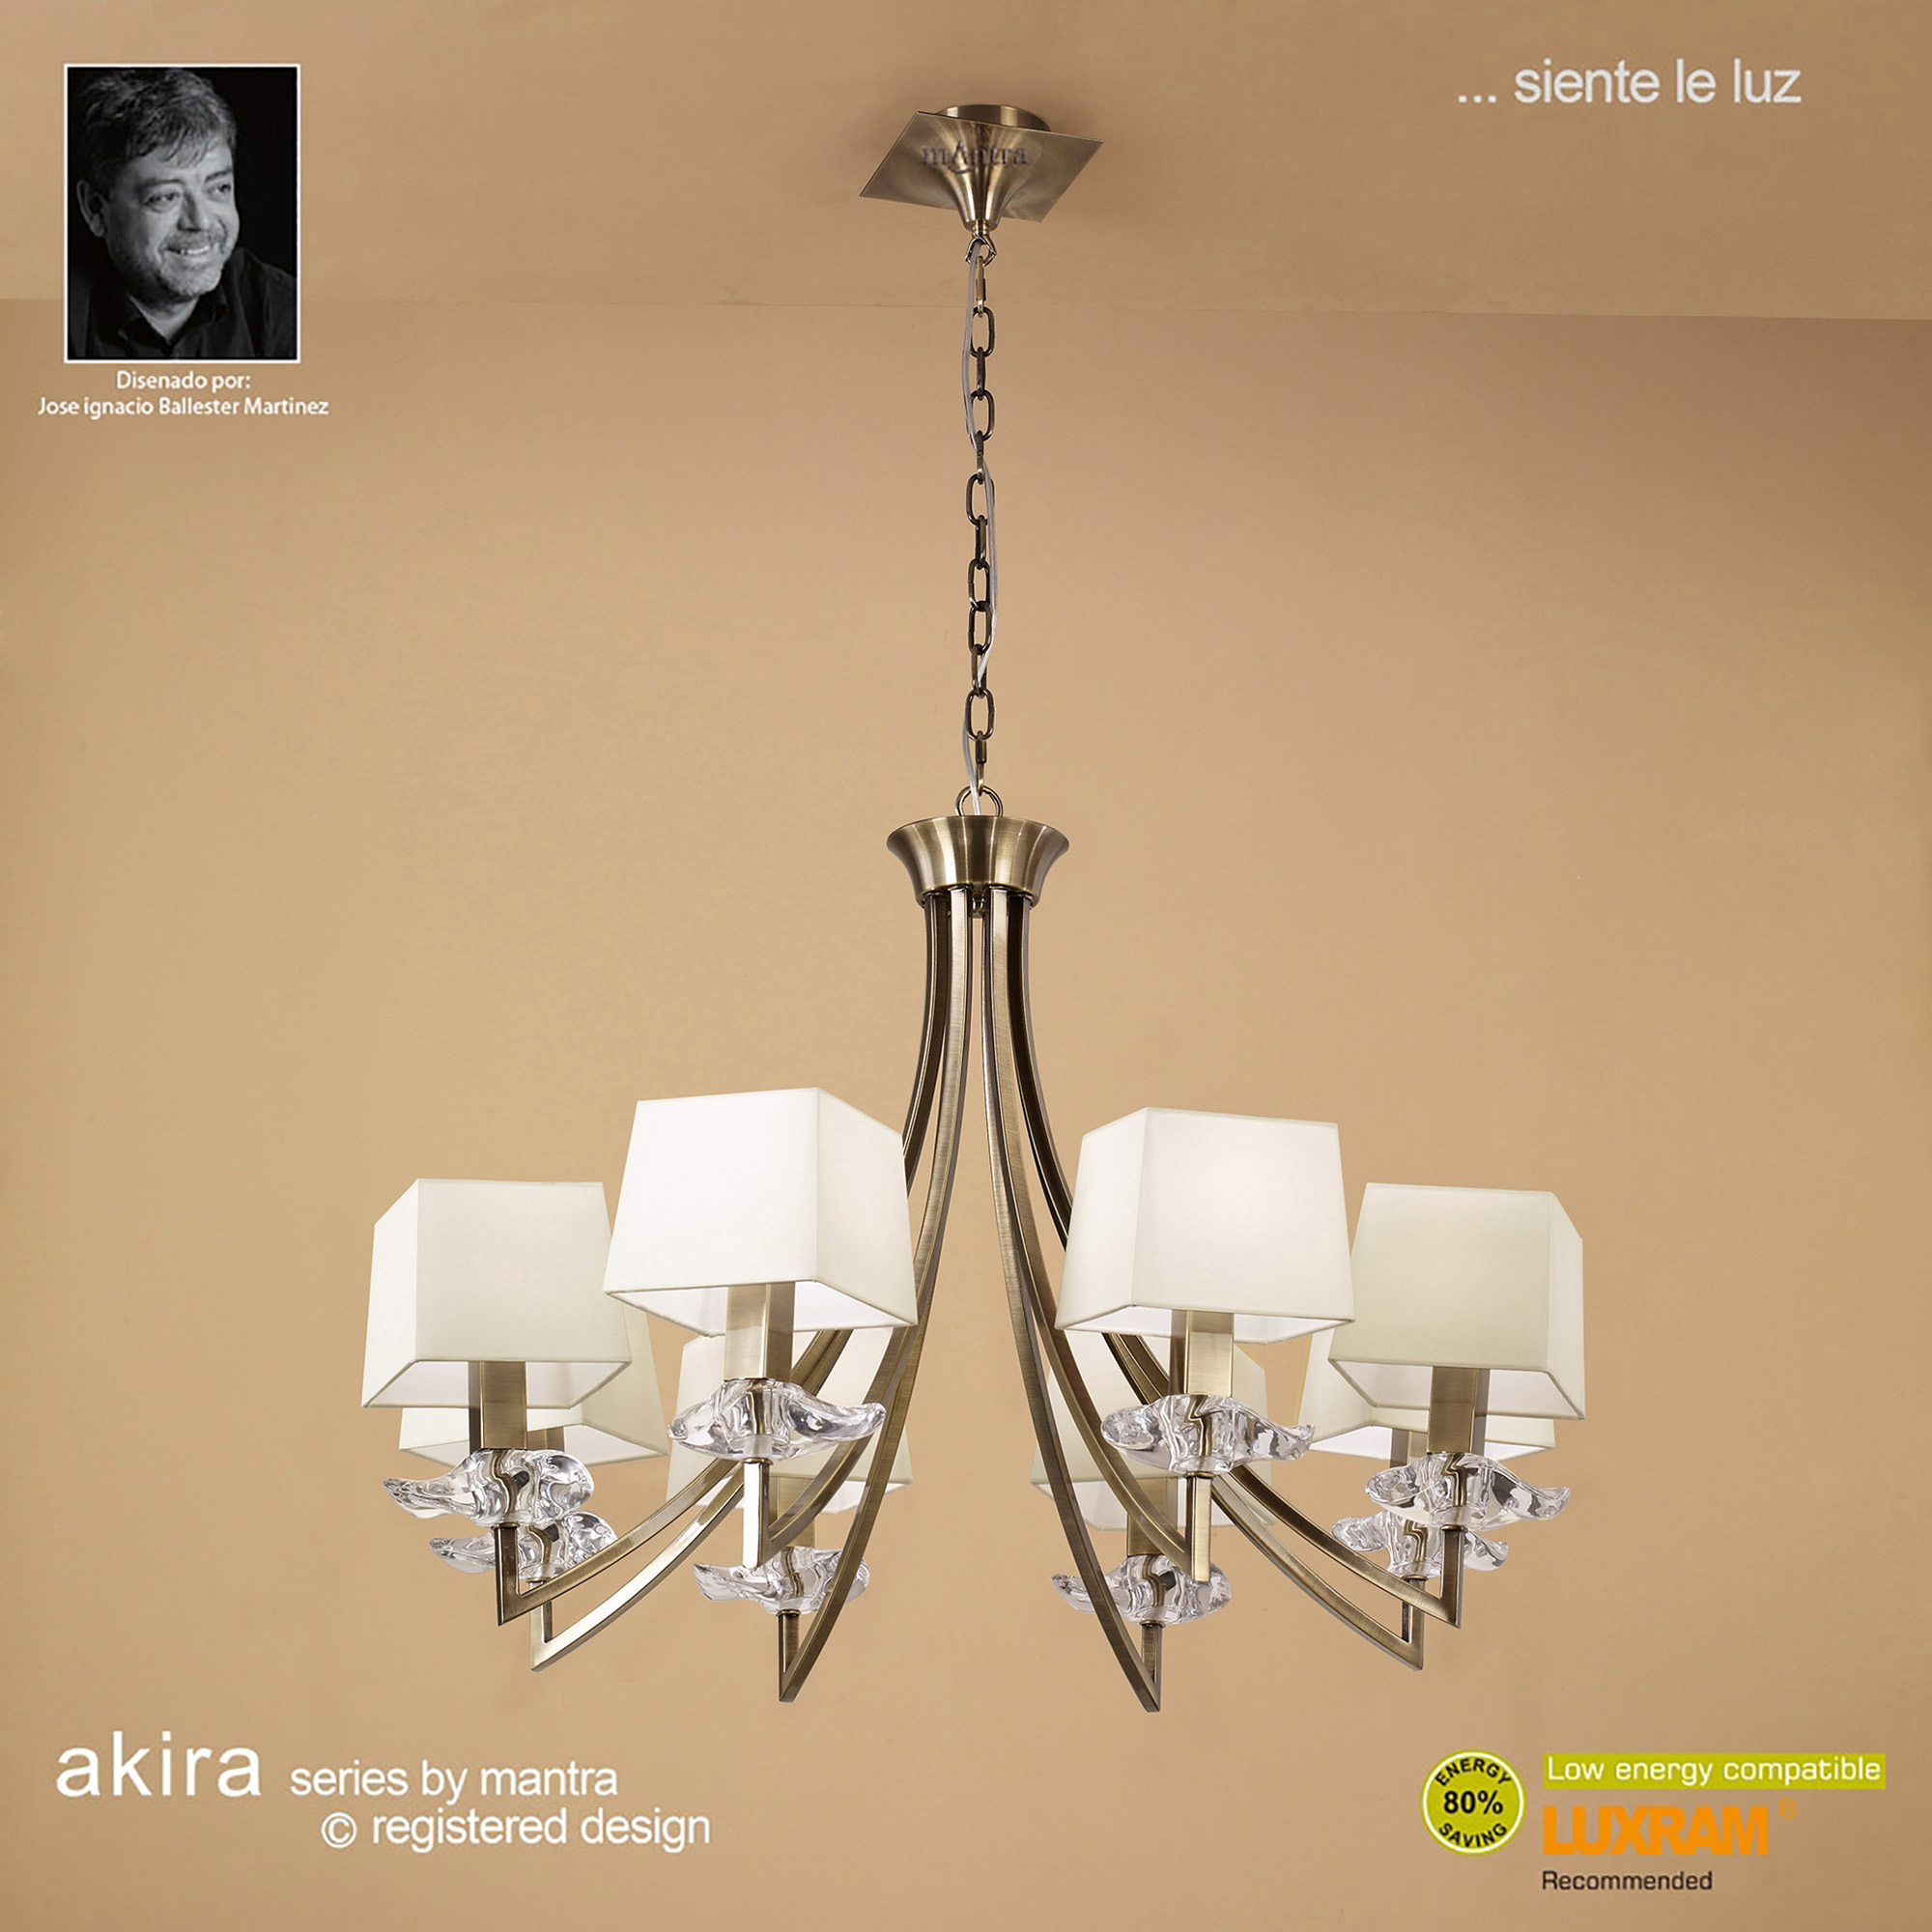 Akira AB Ceiling Lights Mantra Contemporary Ceiling Lights